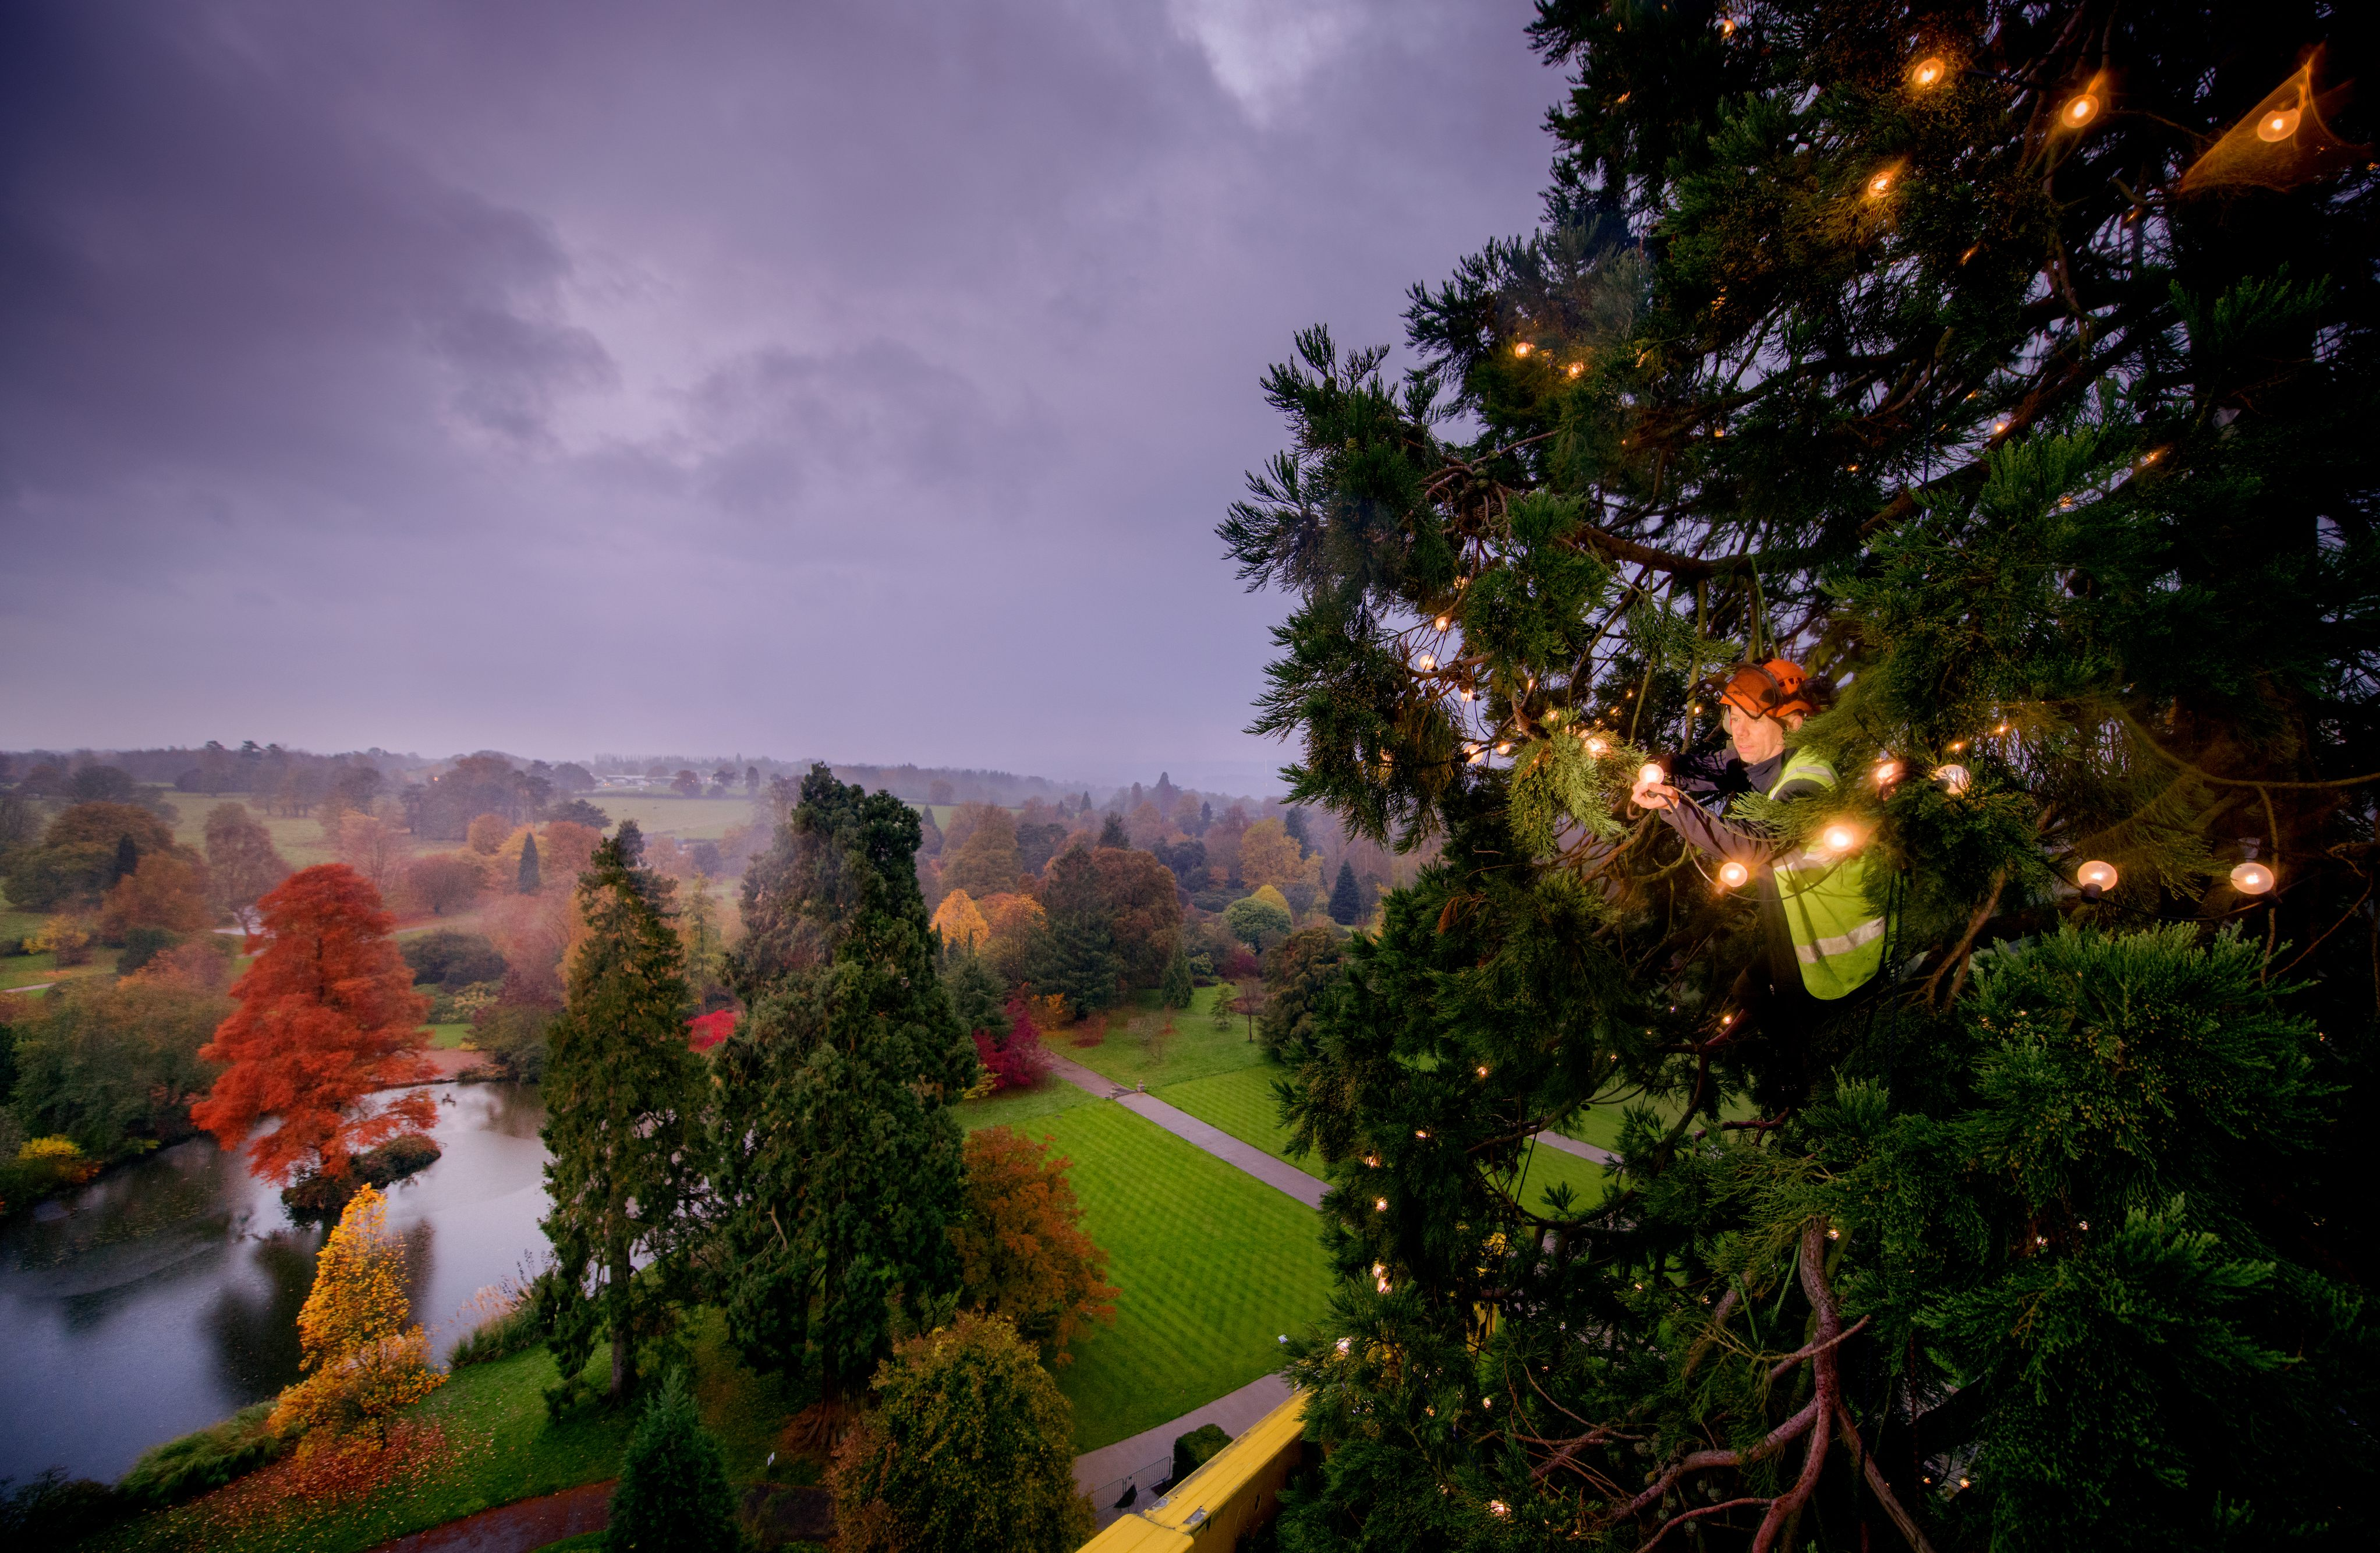 Staff member decking the Wakehurst Christmas tree with lights